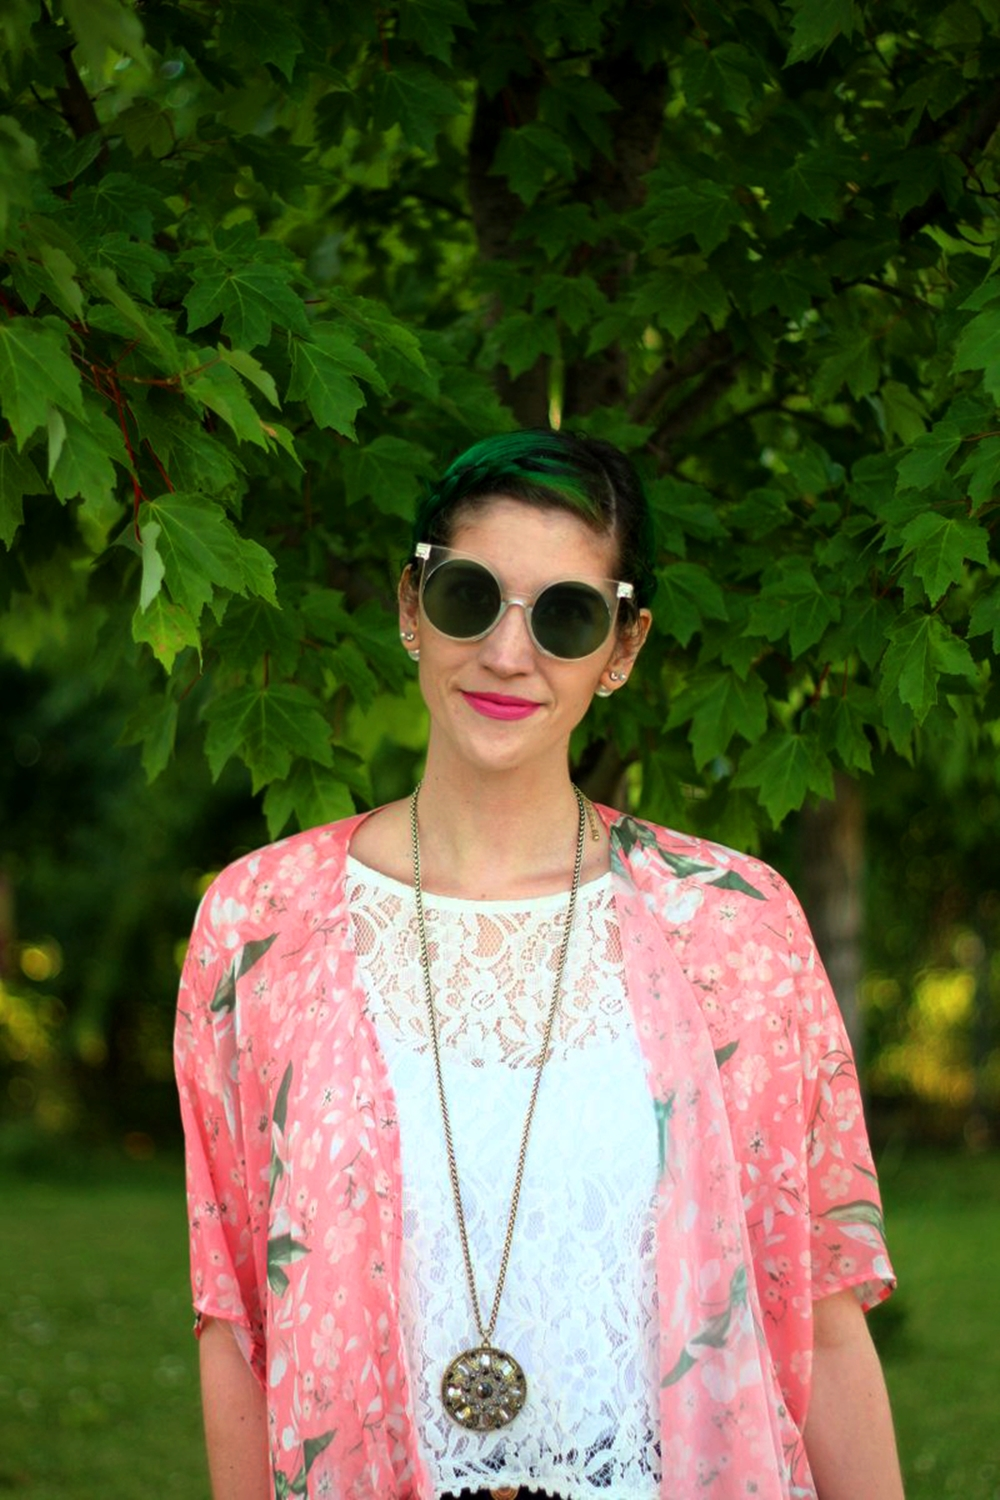 sunglasses-green-hair-pink-kimono-summer-outfit-03